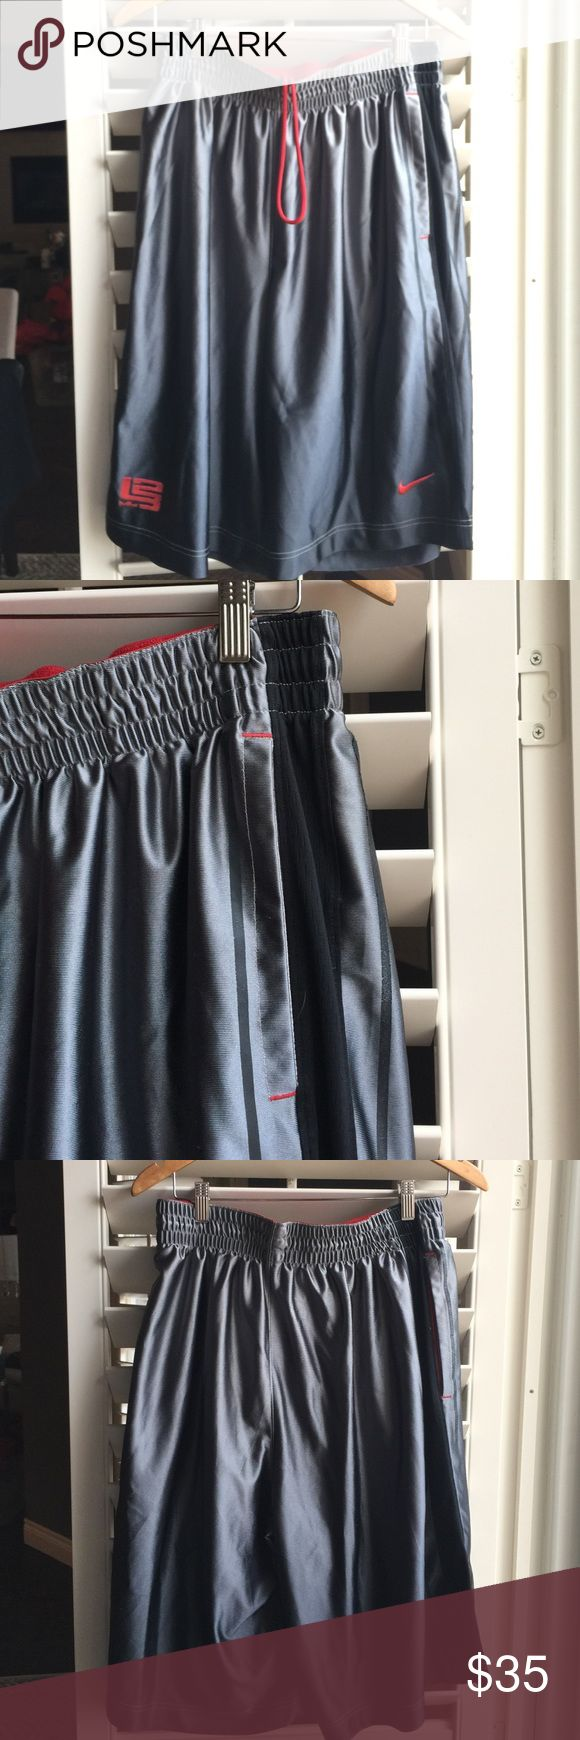 Nike Men's Shorts Nike Men's Shorts. Gently used. Has the start of some puckering of fabric but it is so light it's hard to get a picture of it. Cool design down the side. Basketball style shorts. Nike Shorts Athletic